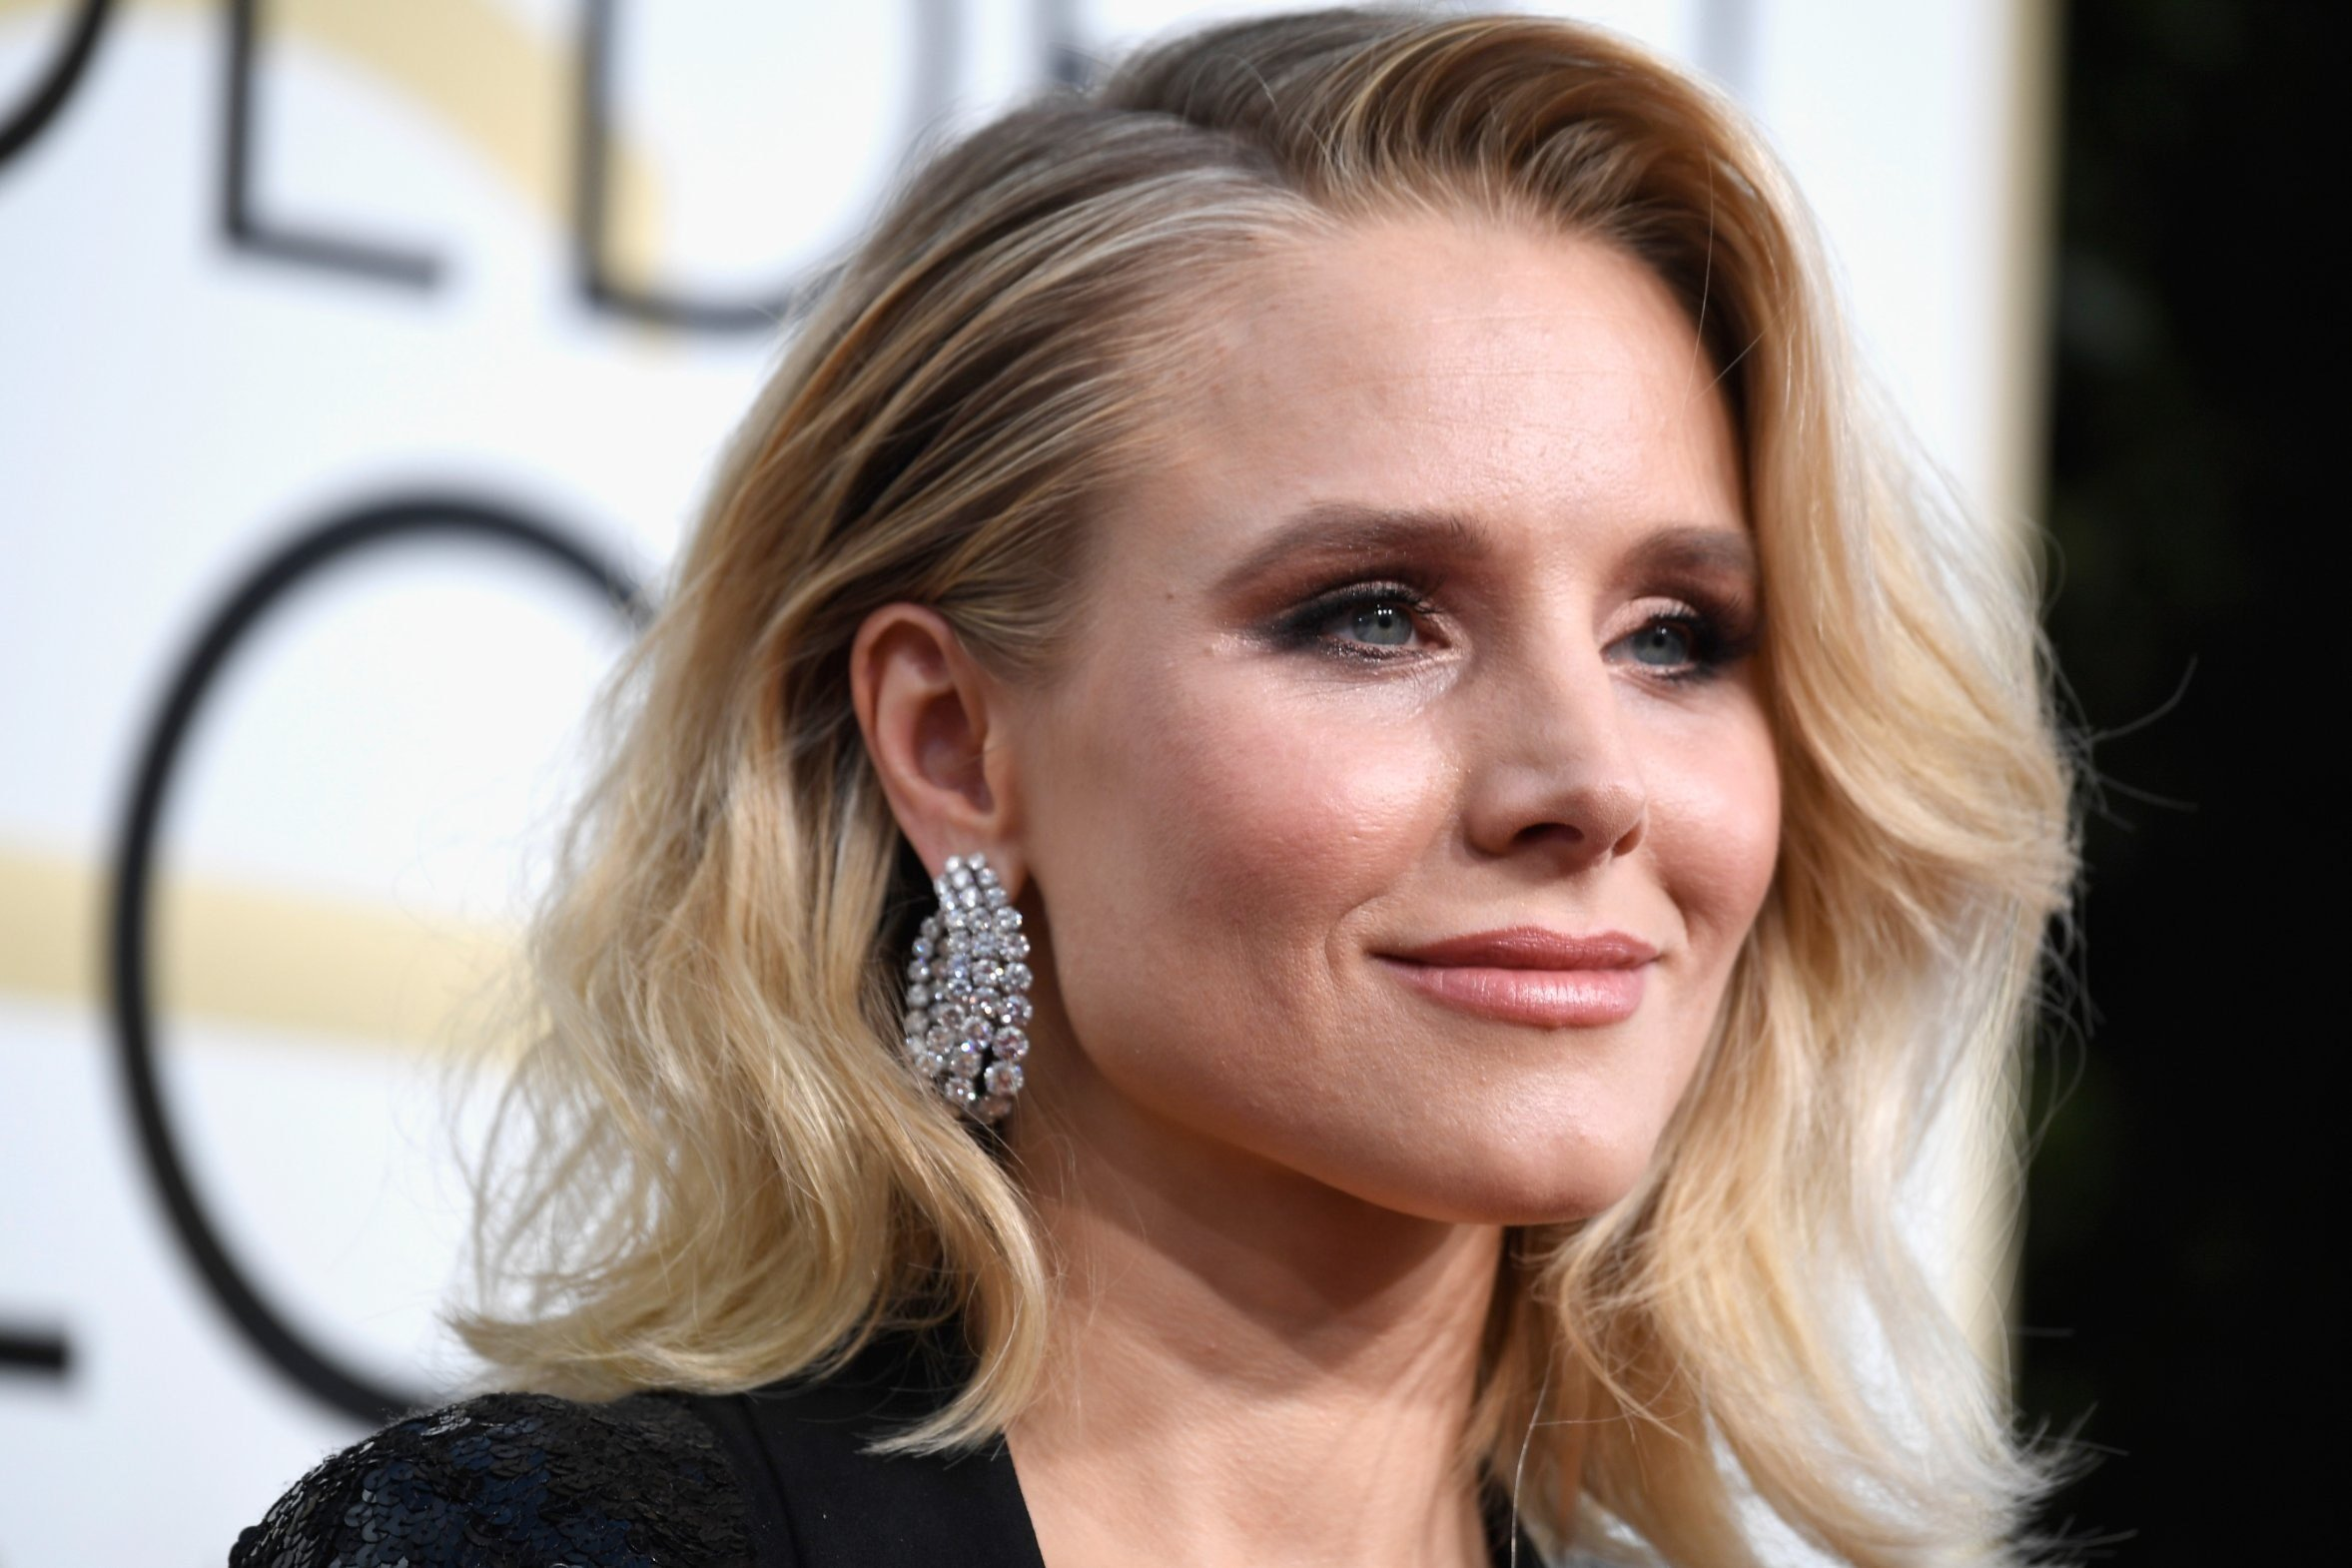 SAG Awards just recruited Kristen Bell as first-ever host